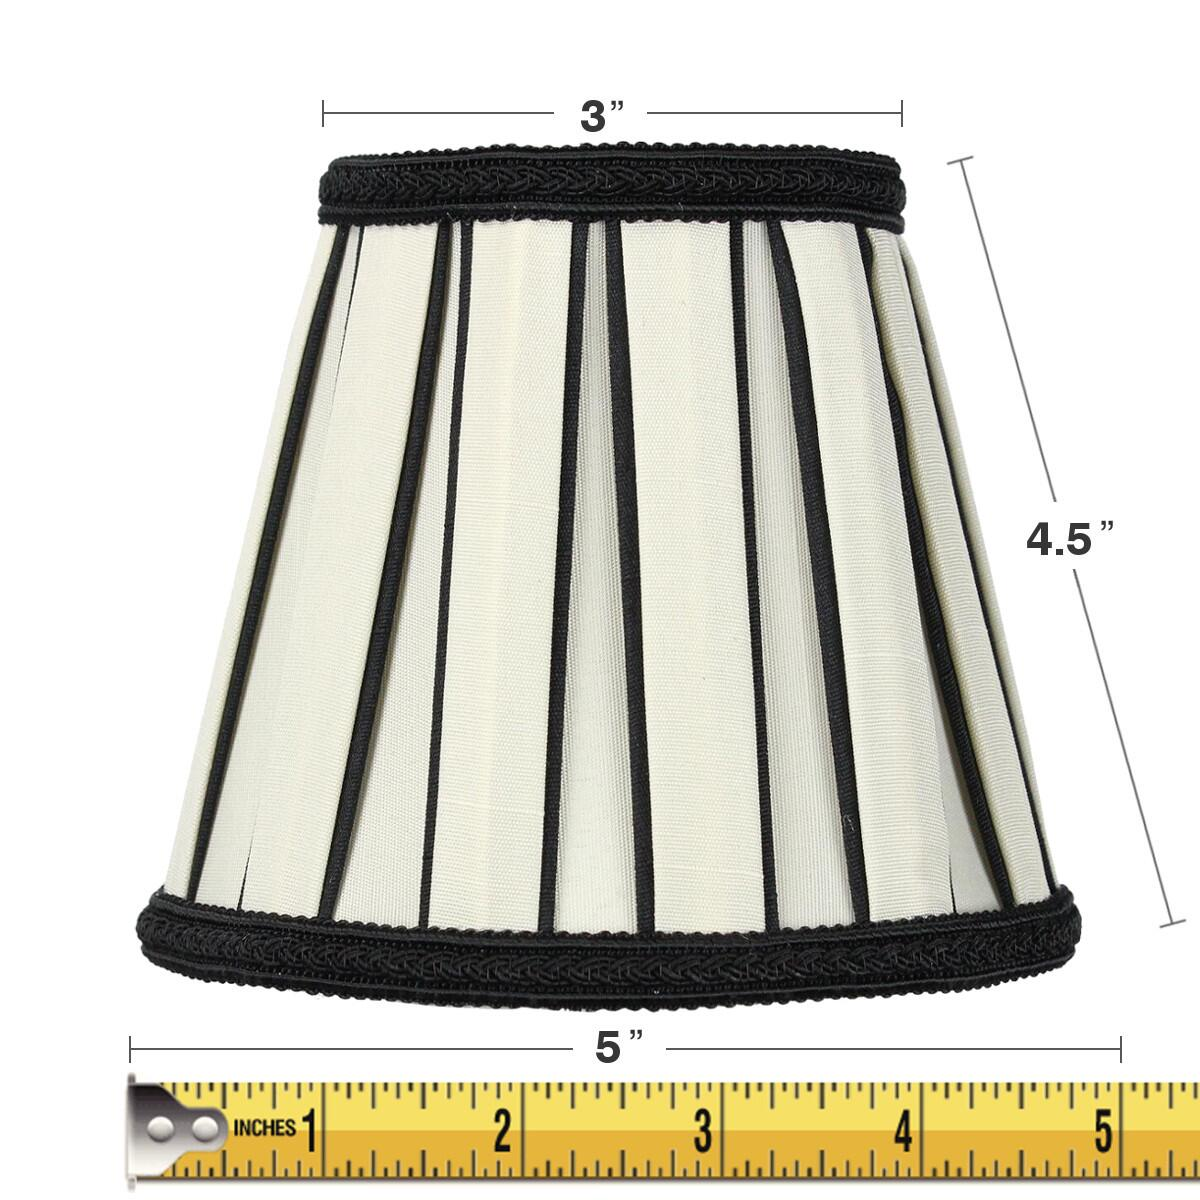 3x5x5 Eggshell with Black Chandelier Clip-On Lampshade by Home Concept